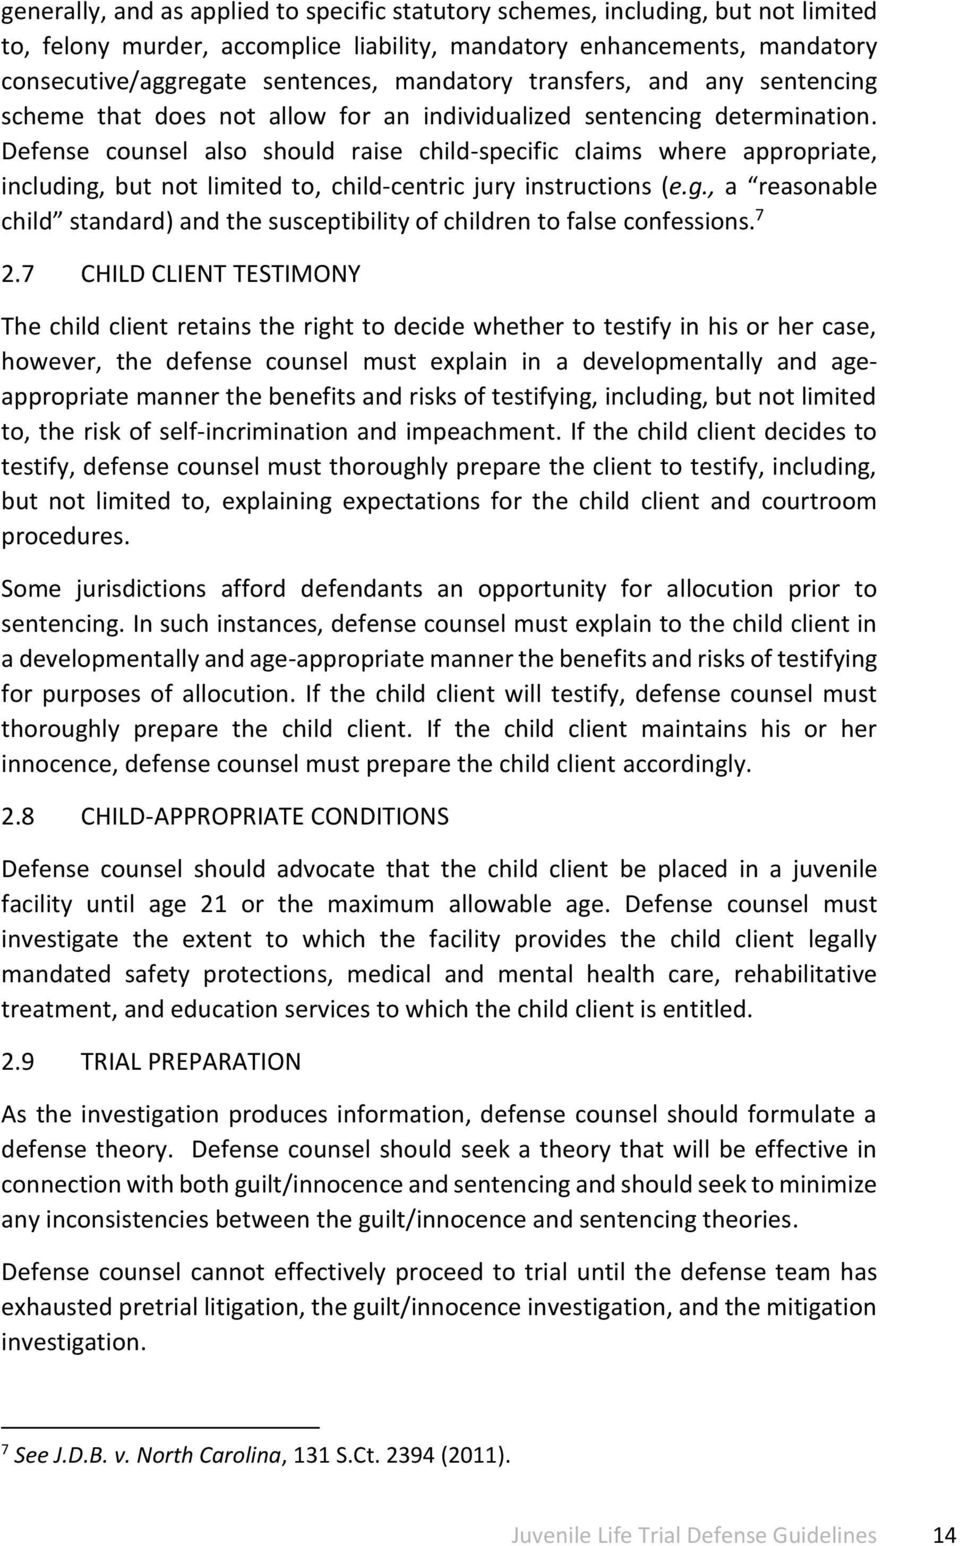 Defense counsel also should raise child-specific claims where appropriate, including, but not limited to, child-centric jury instructions (e.g., a reasonable child standard) and the susceptibility of children to false confessions.